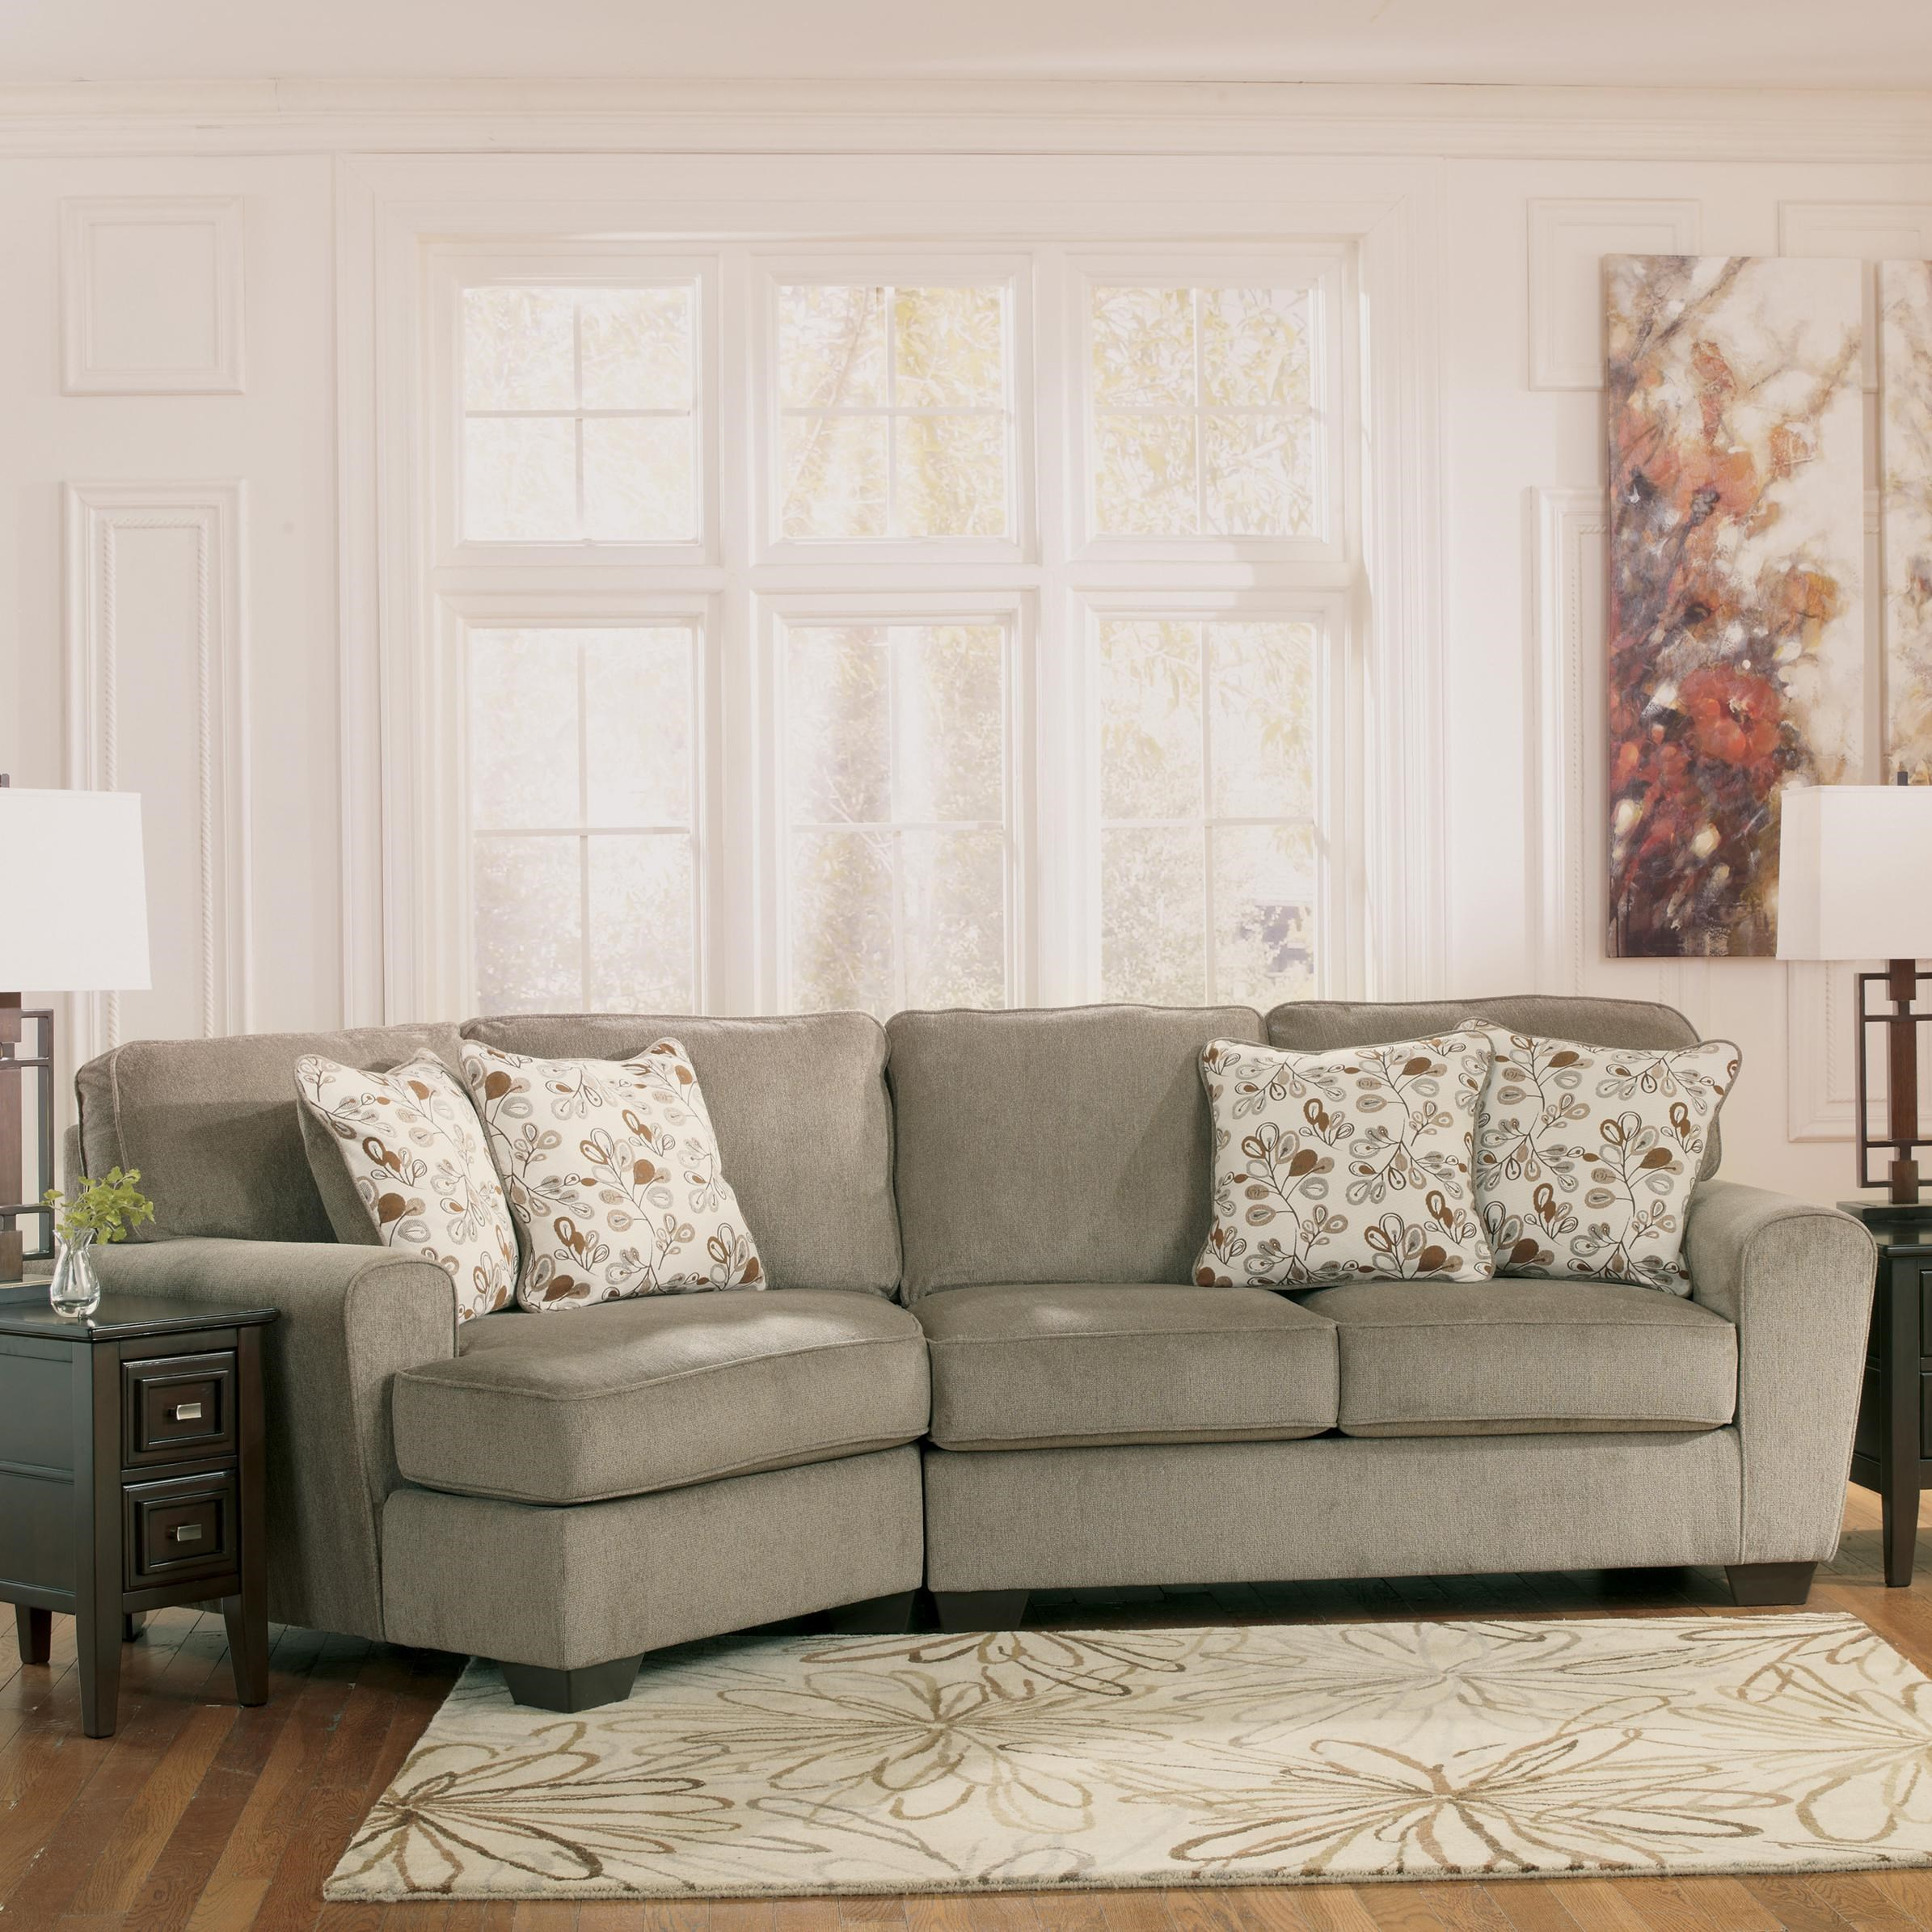 Ashley Furniture 2 Piece Sectional ashley furniture patola park - patina 2-piece sectional with left